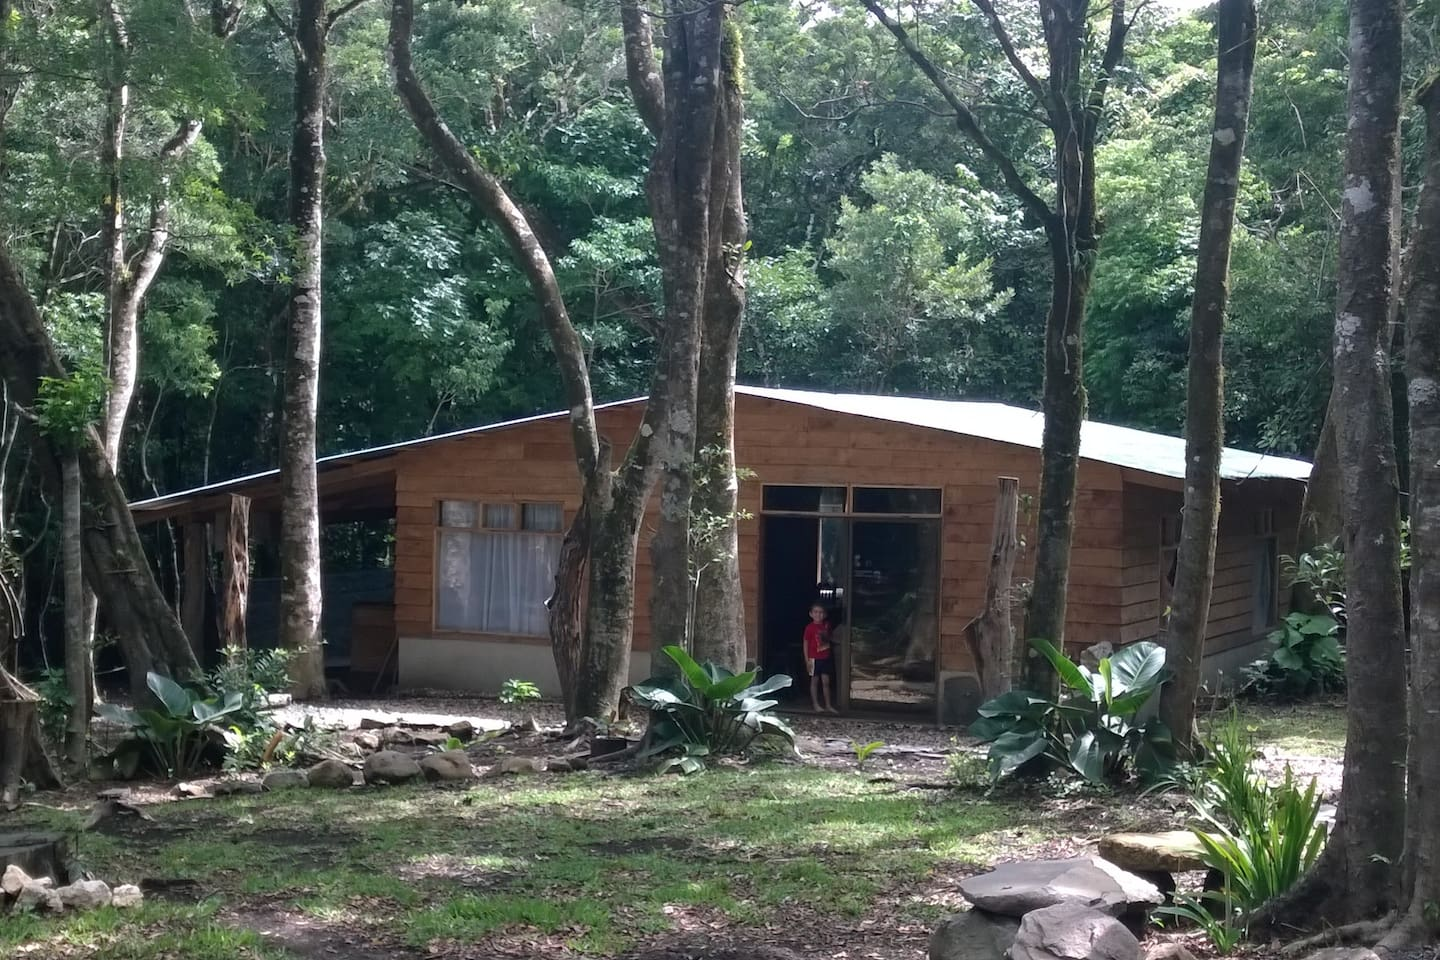 Our little forest house is filled with love, laughter, and hospitality.